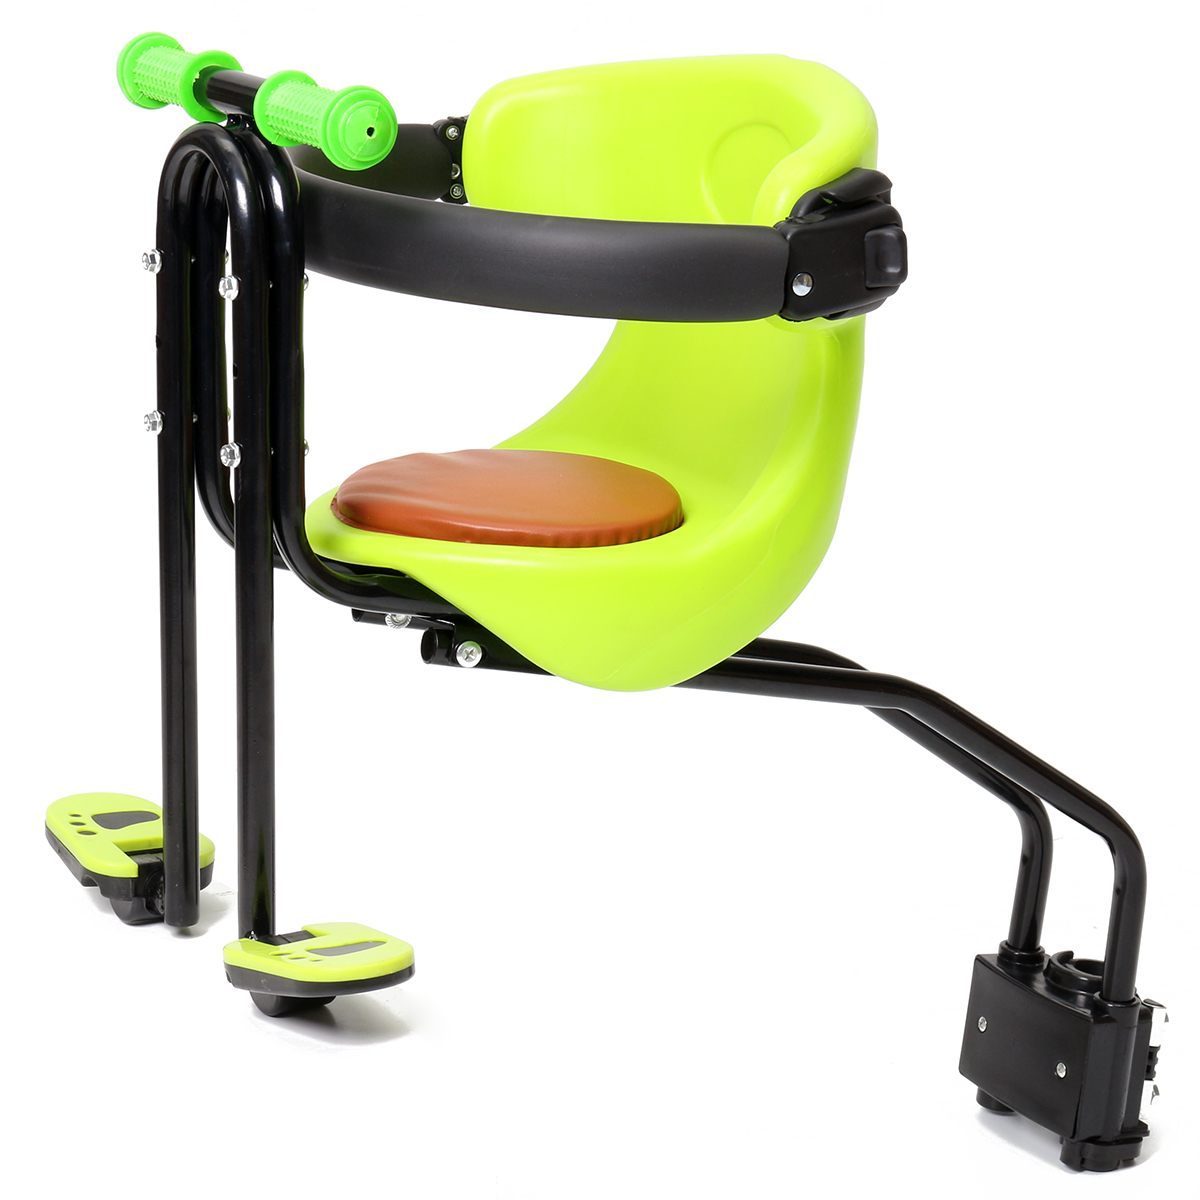 Front Chair Safety Baby Child Kids Bicycle Bike Seat Sport Seats w// Foot Pedals